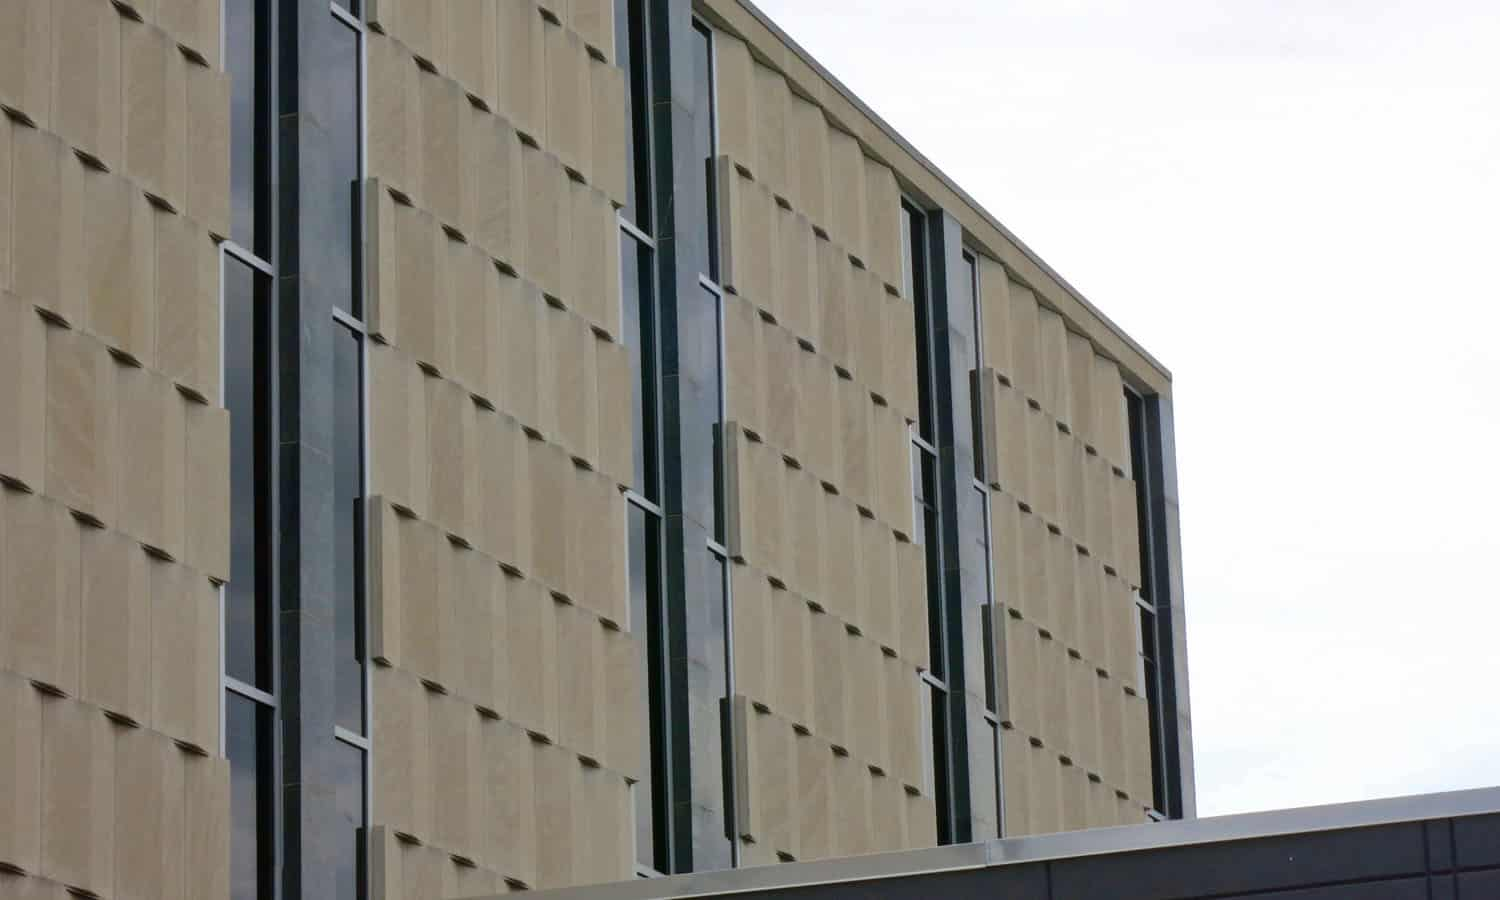 The sophisticated limestone-clad curtain wall of the justice building